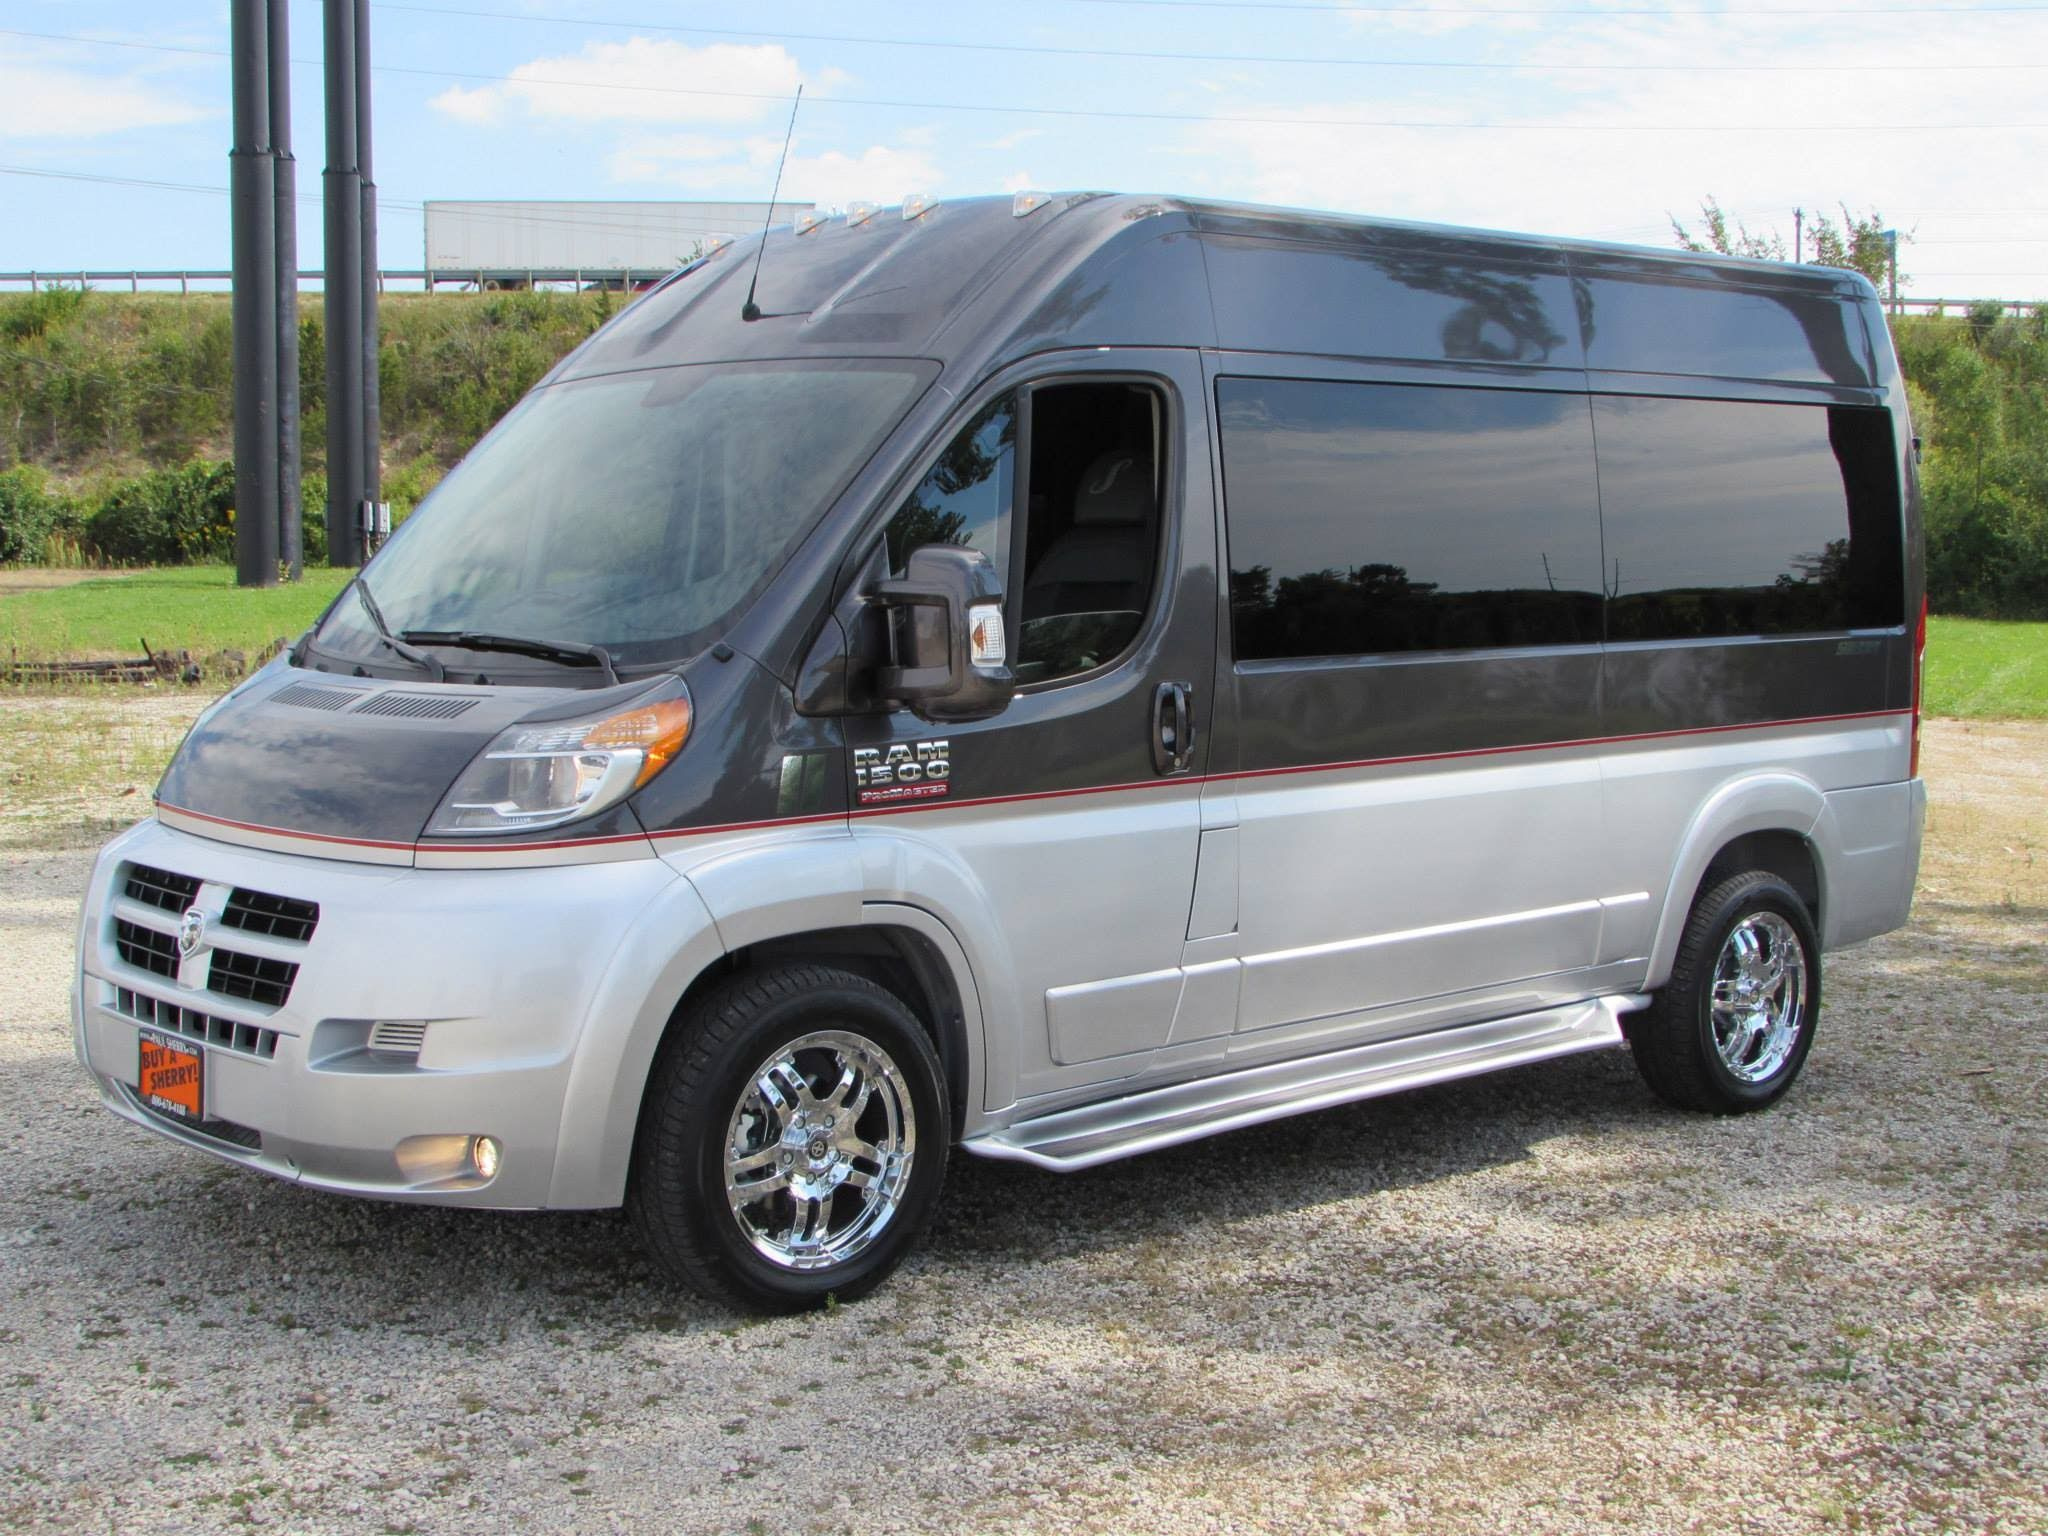 2014 Ram Promaster Commercial Conversion Van Start Up Test Drive And